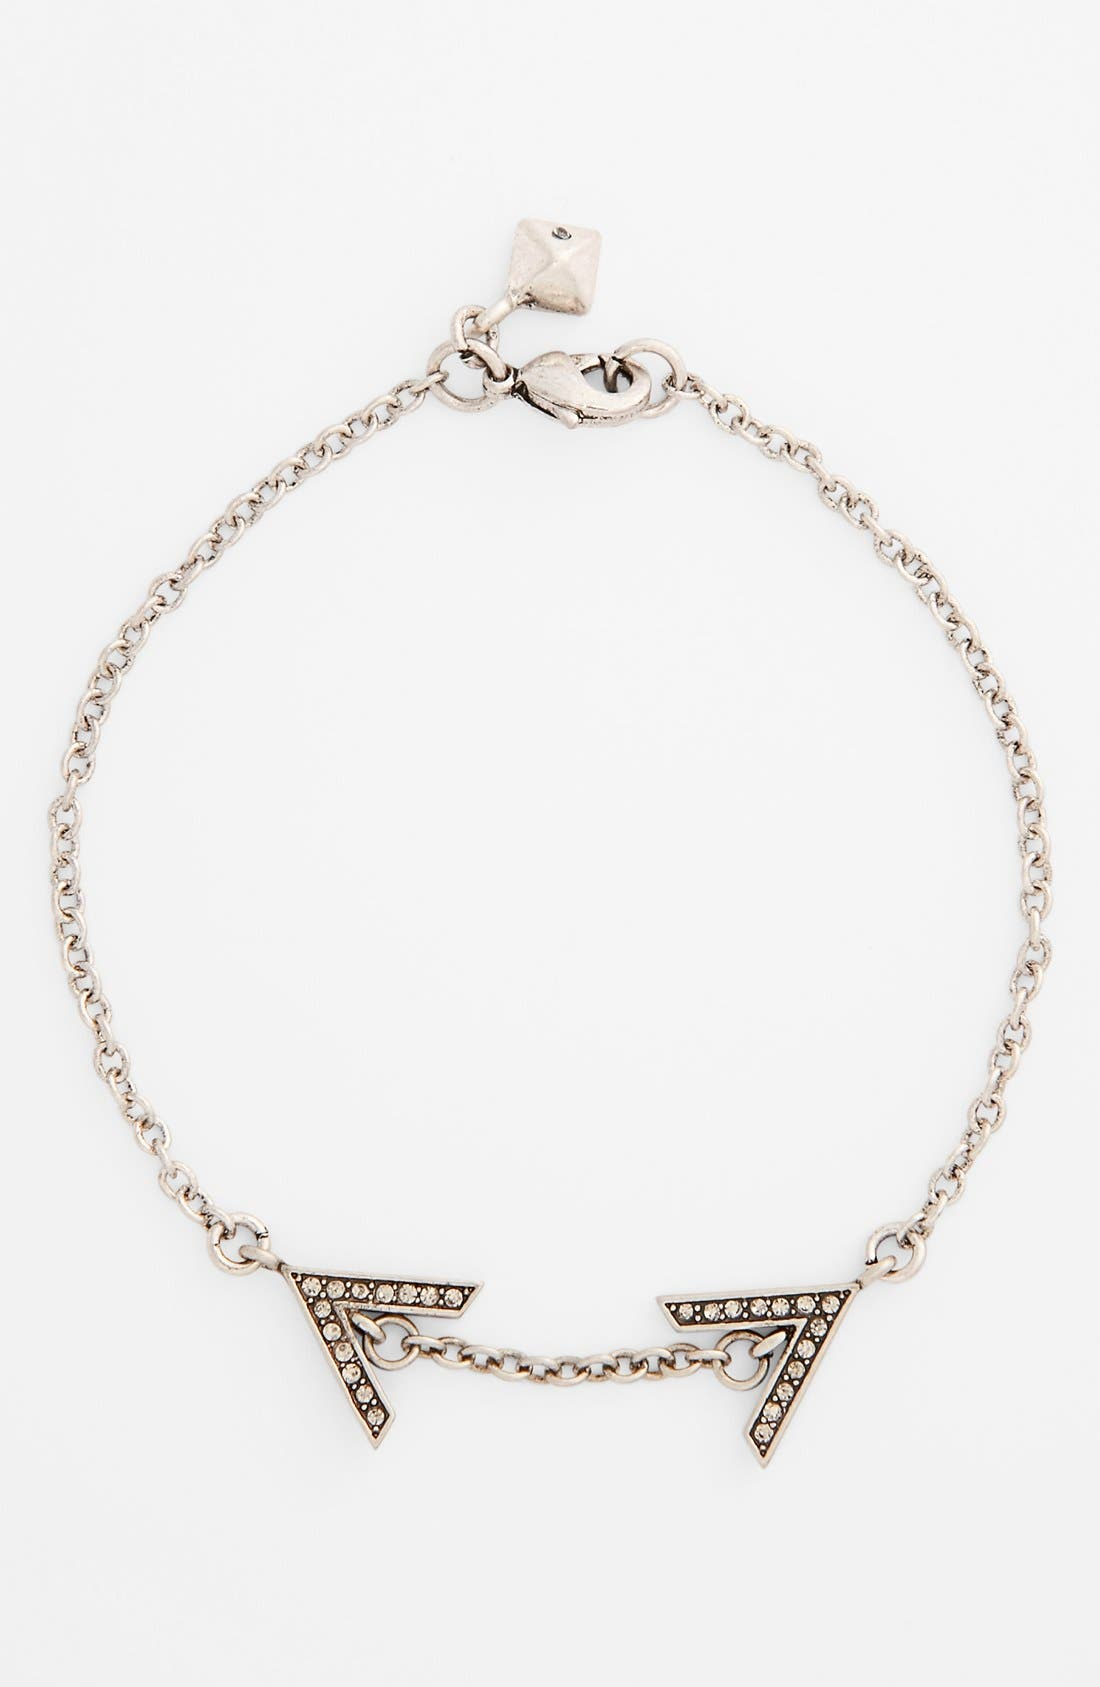 Main Image - Rebecca Minkoff 'Jewel Box' Double V Line Bracelet